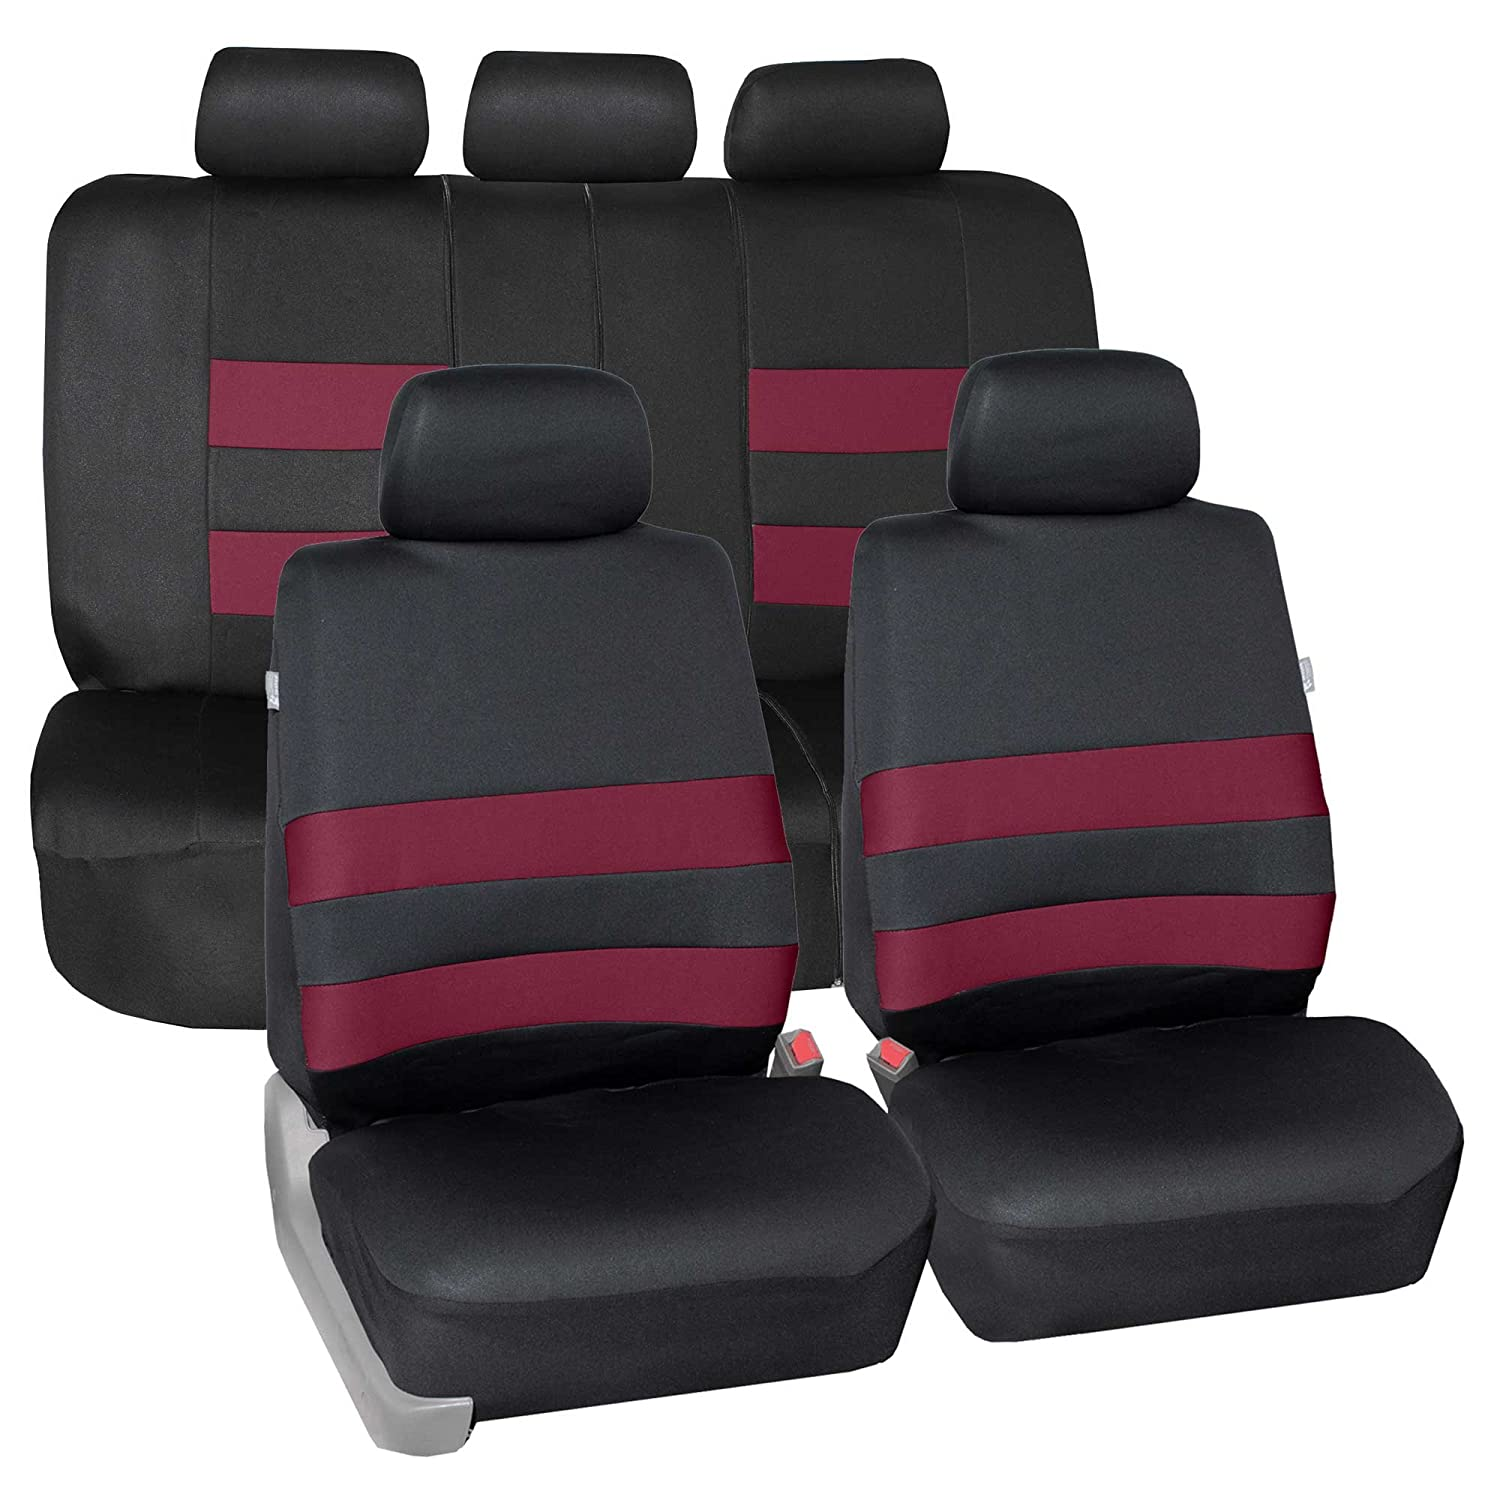 FH Group FB087BLUE115 Blue Premium Neoprene Seat Cover Water Resistent//Airbag//Split Bench Compatible